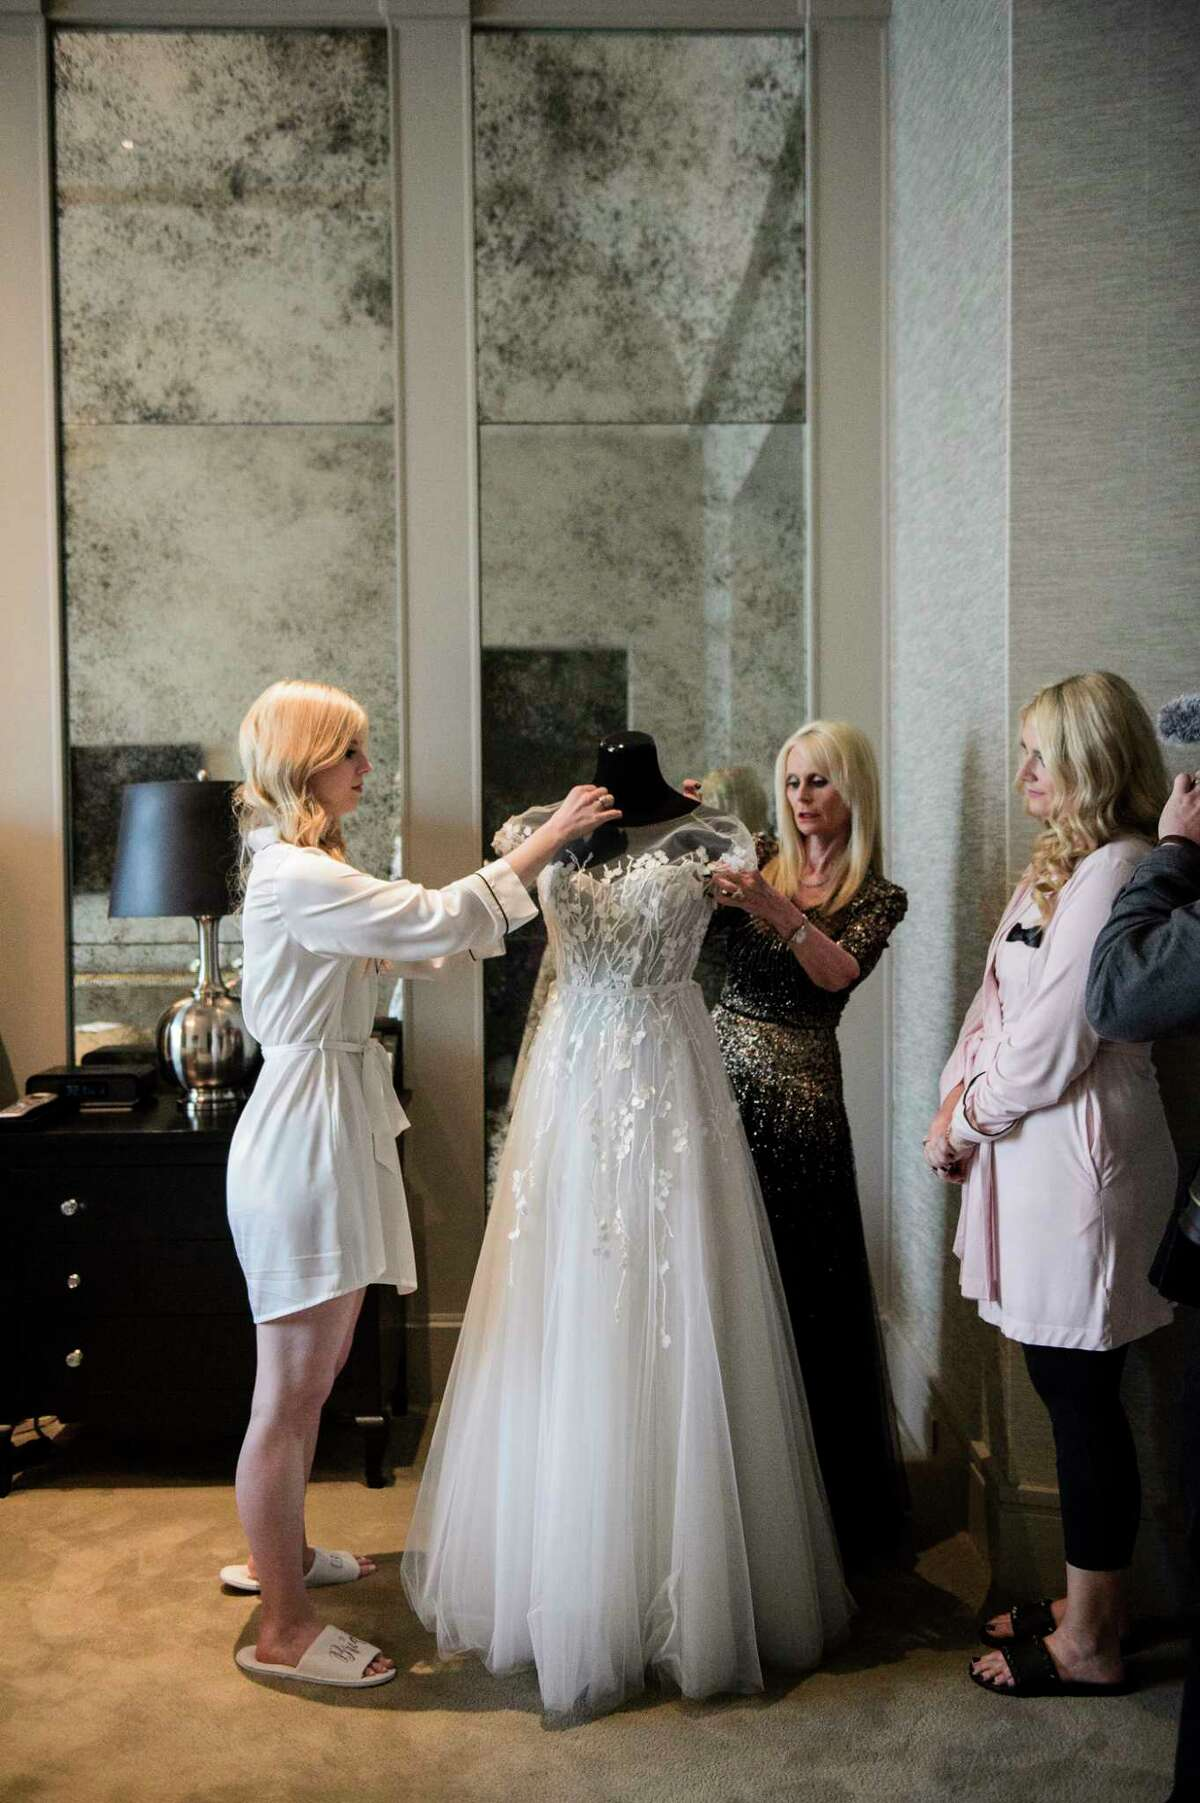 Jo Lynn Falgout helps daughter Kimberly Falgout Scheele dress in her wedding gown from Joan Pillow Bridal Salon.